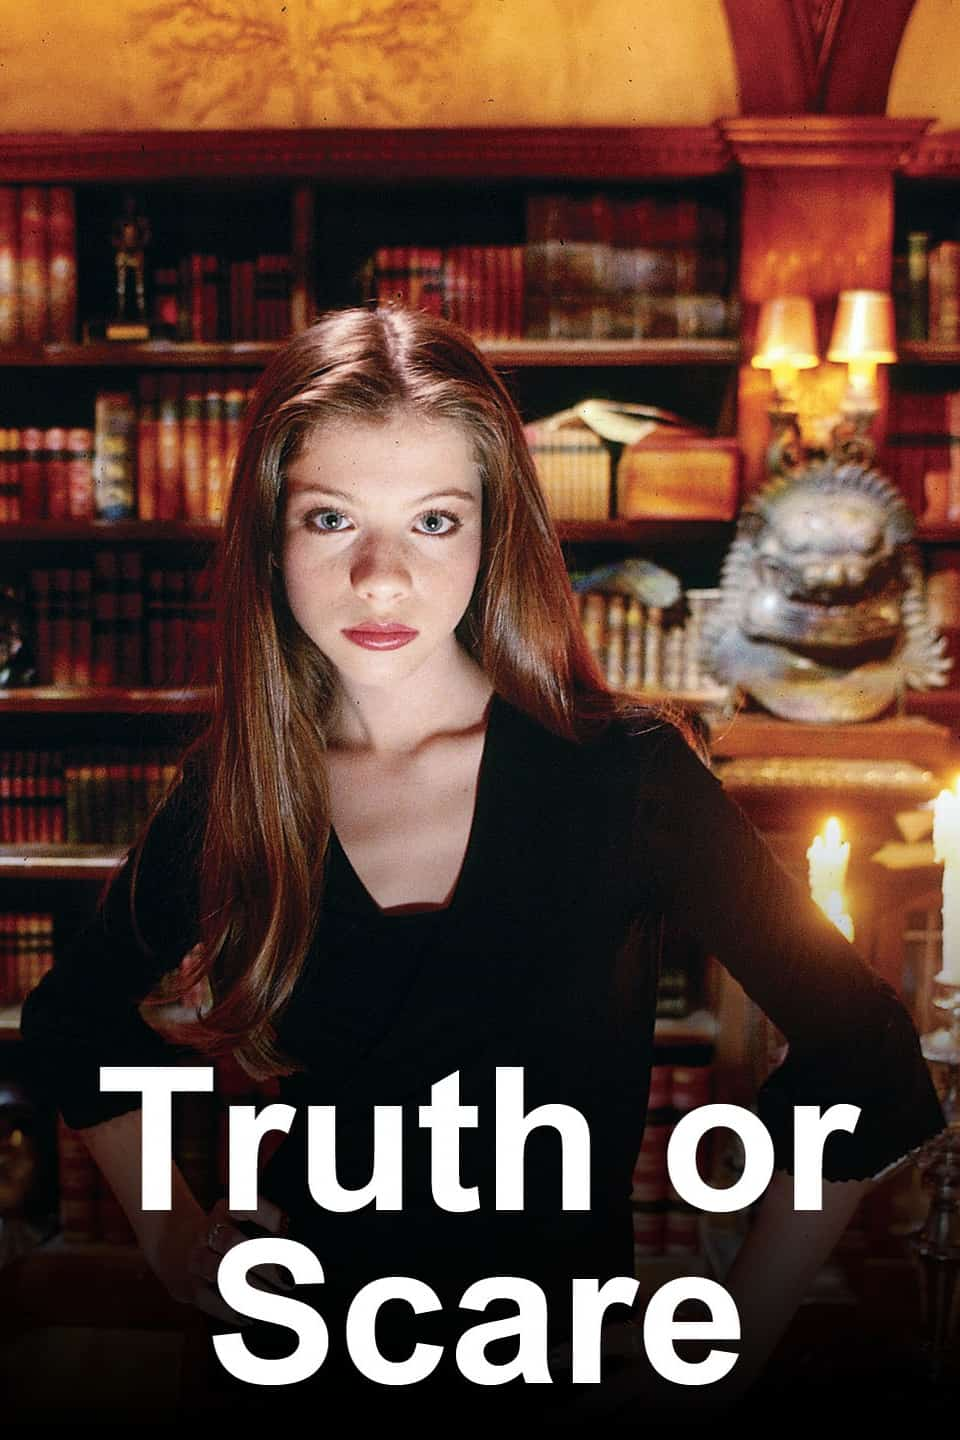 Truth or Scare, 2001